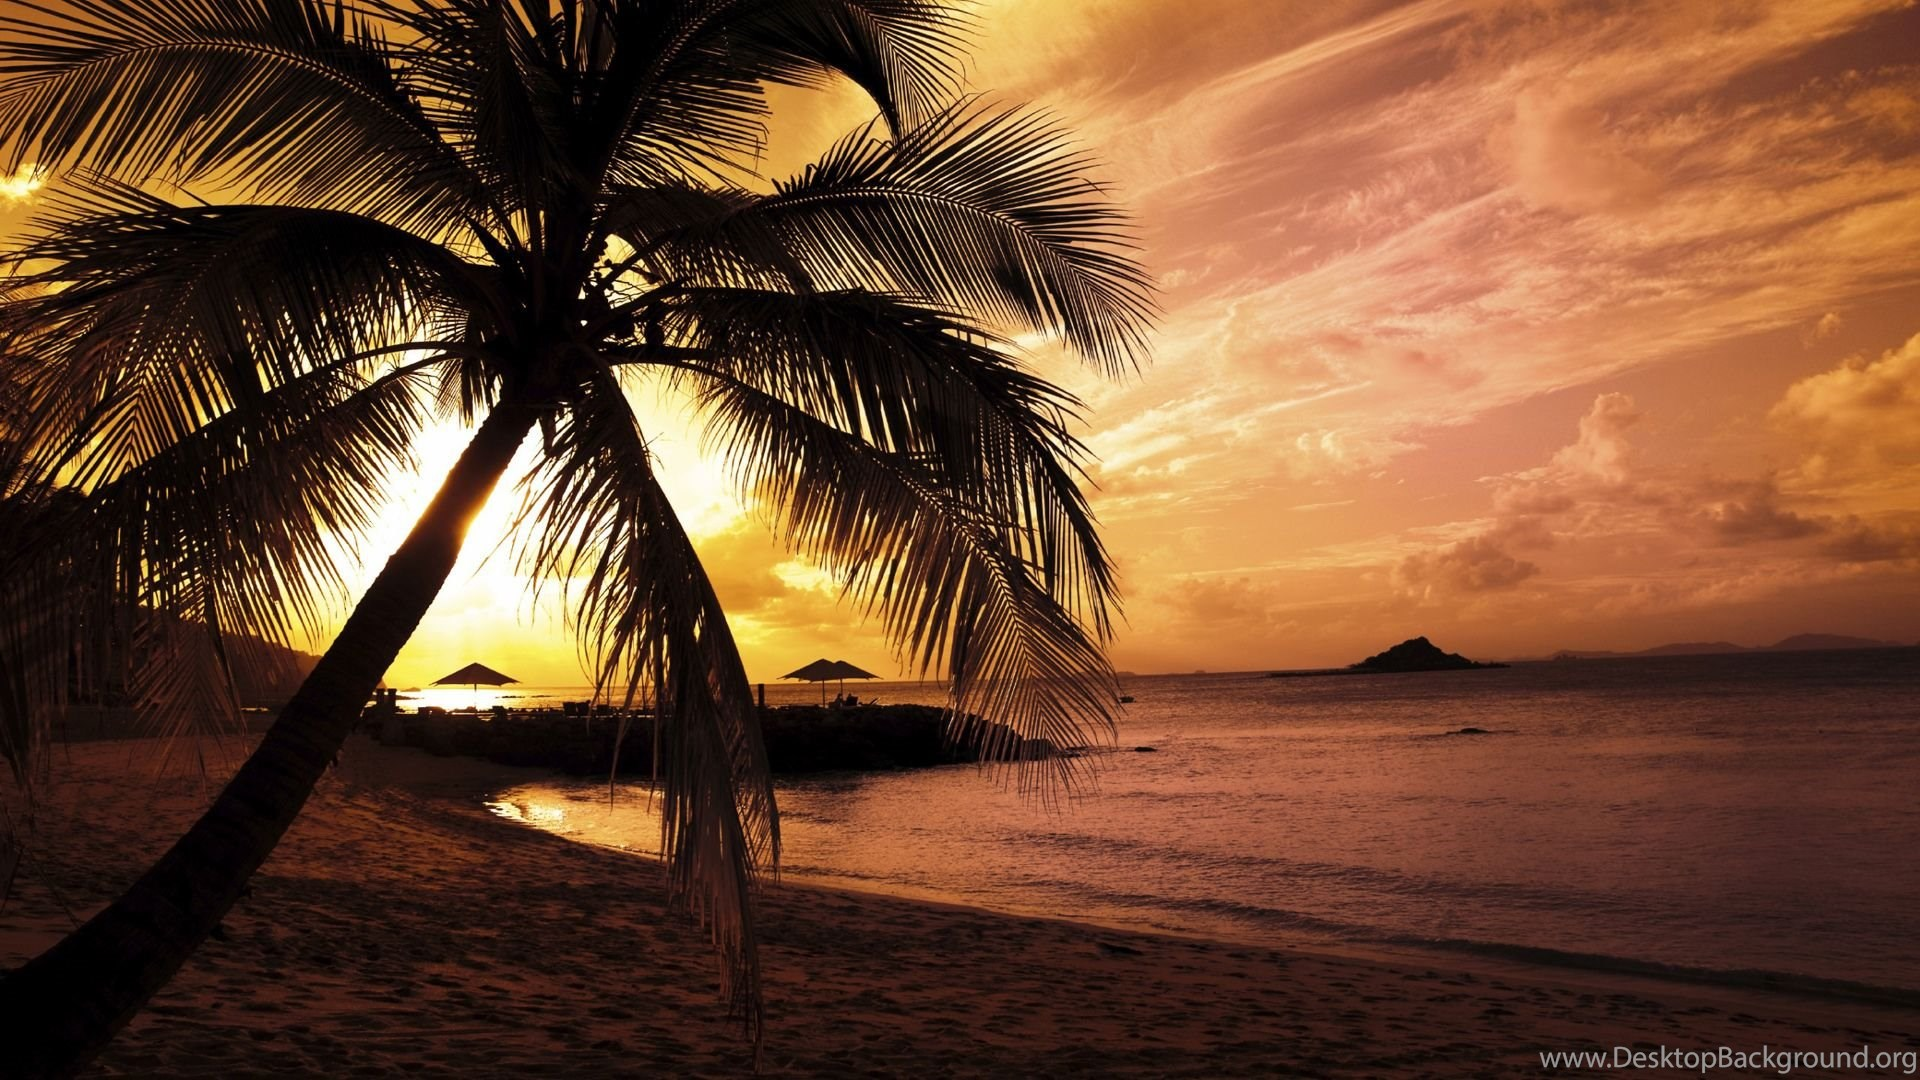 beach night wallpapers full hd ndemok desktop background